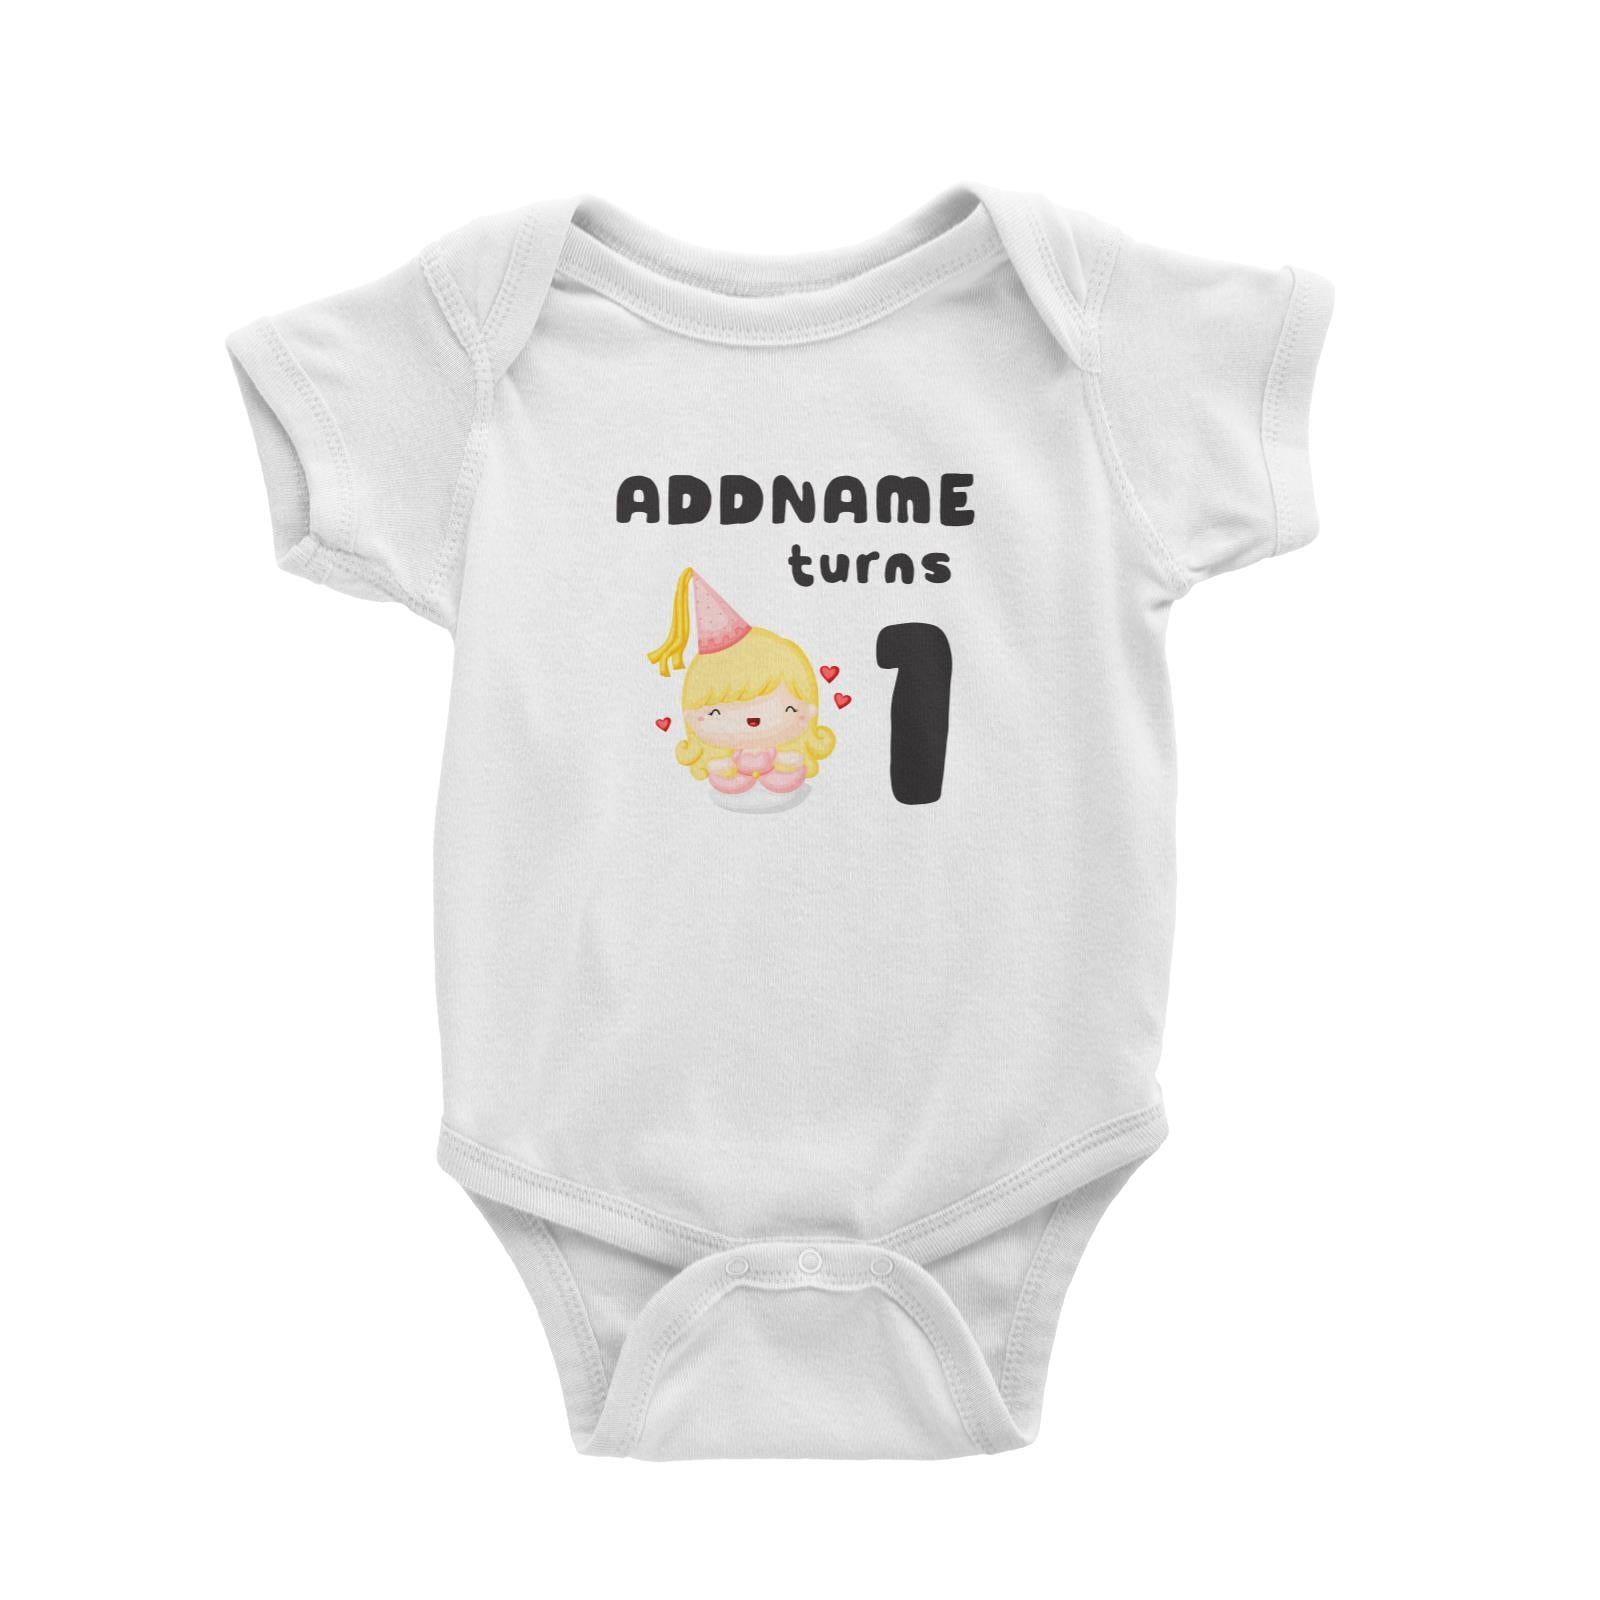 Birthday Royal Princess Girl Addname Turns 1 Baby Romper